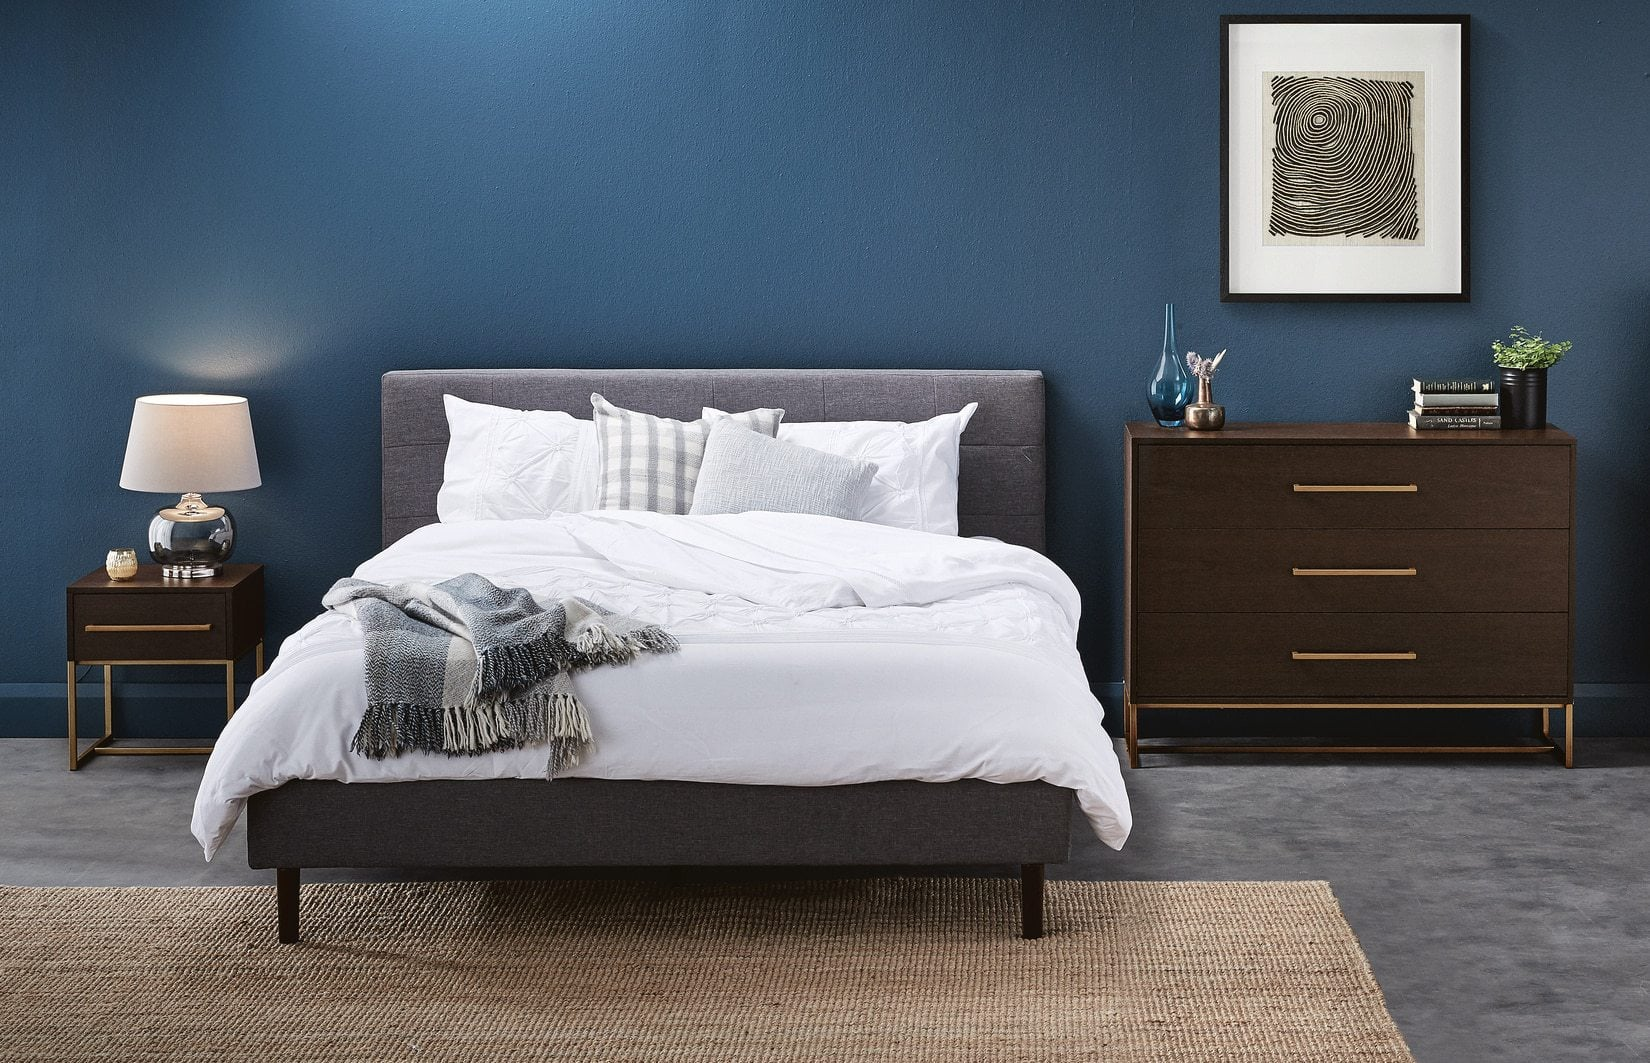 bedroom furniture in dark brown wood with gold handles from aldi